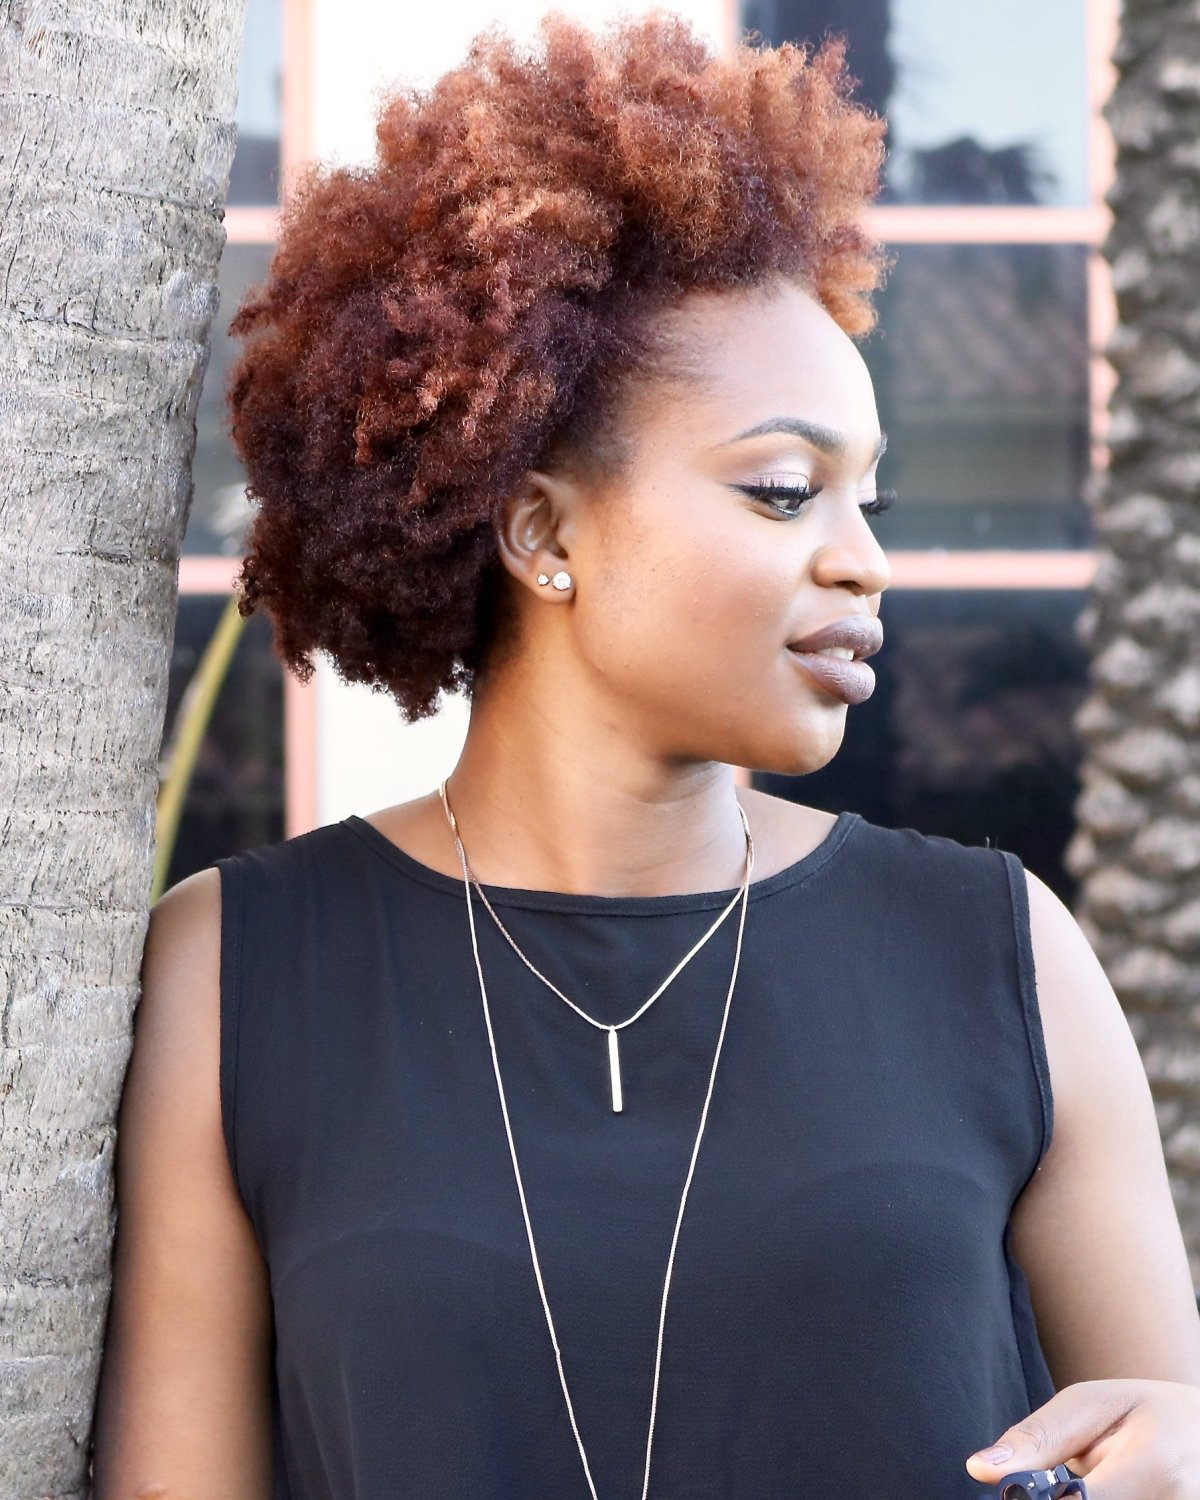 10 Tips for Coloring Natural Hair for the First Time - Ijeoma Kola